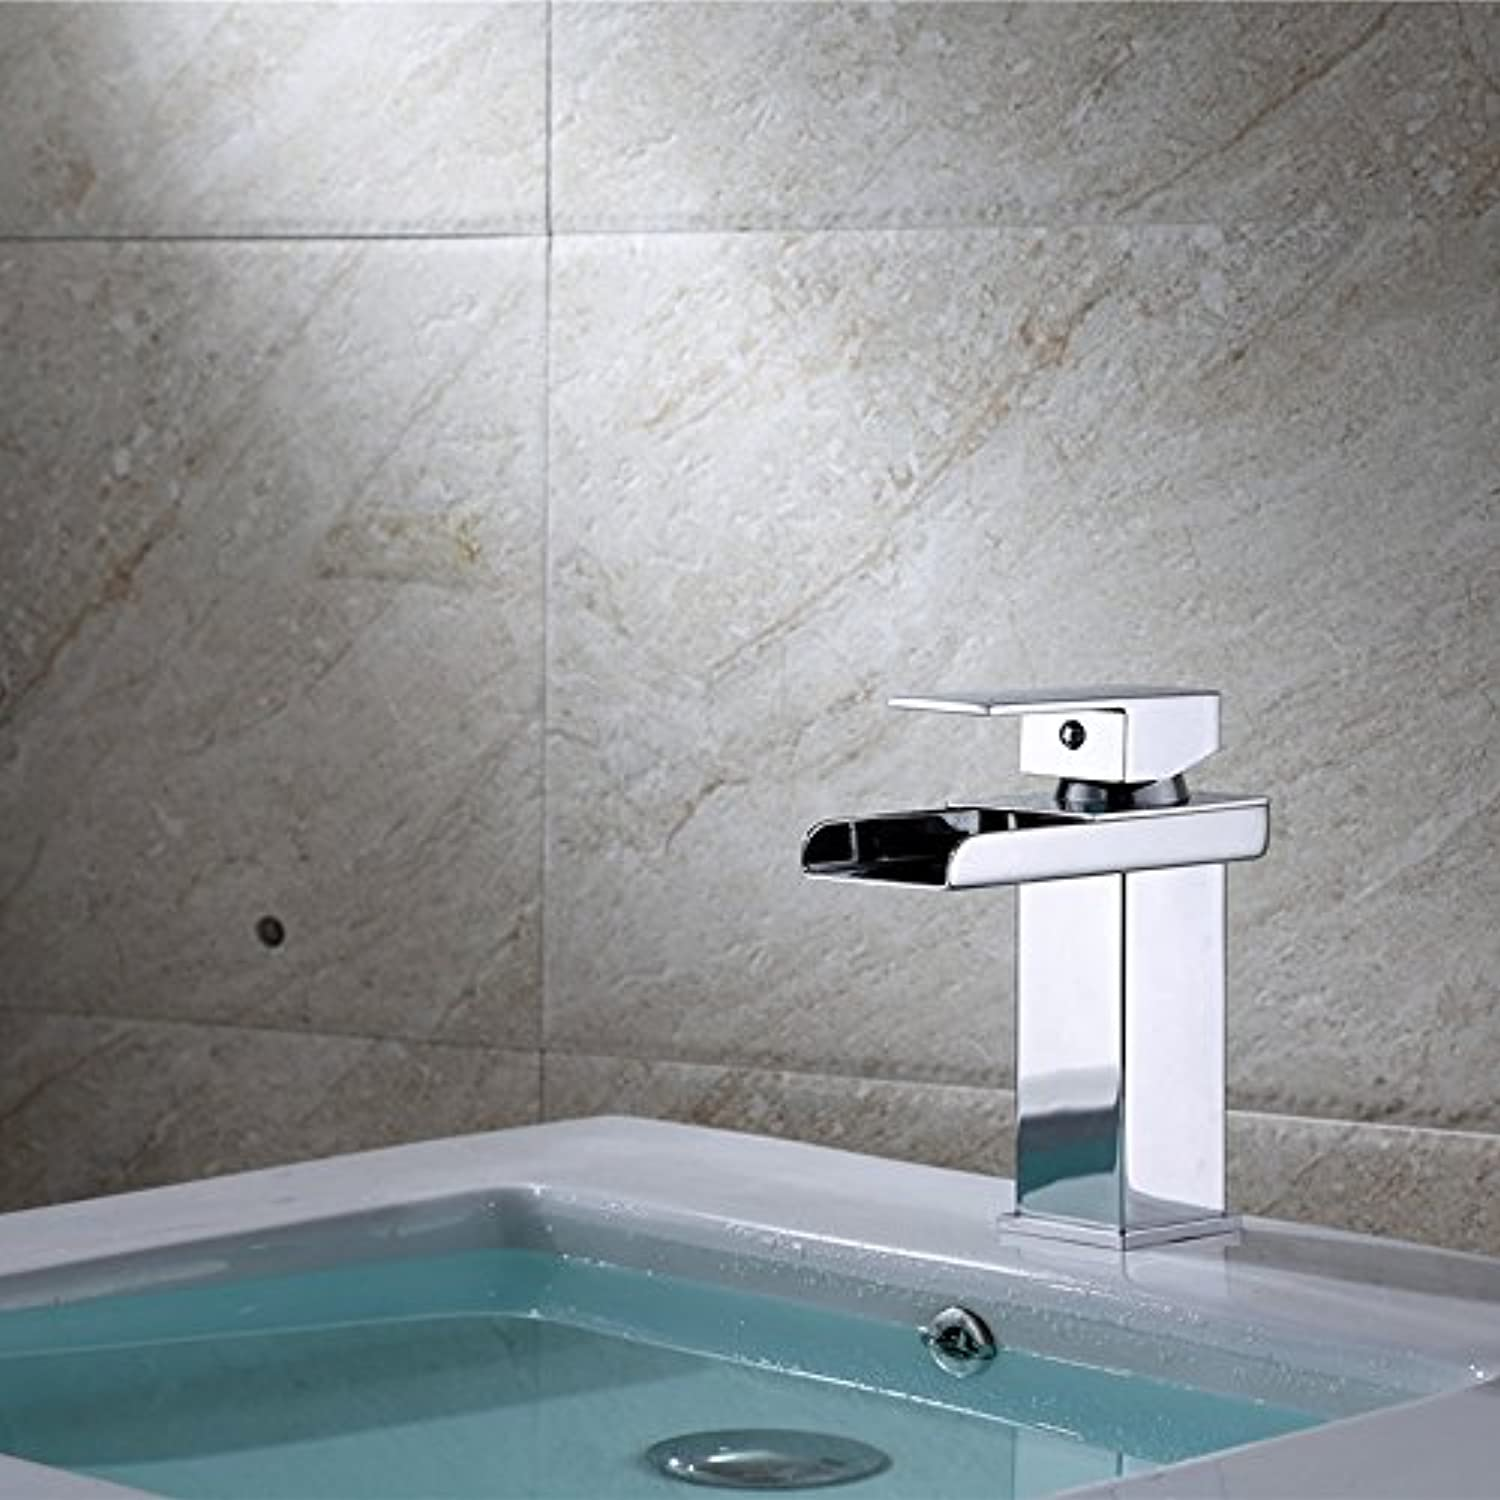 AOLOR Basin Stainless Steel Single Hole hot and Cold Waterfall Modern Taps Kitchen Brass Faucet Bathroom Sink Waterfall Tap Mixer Water Washroom Bath Tub Shower